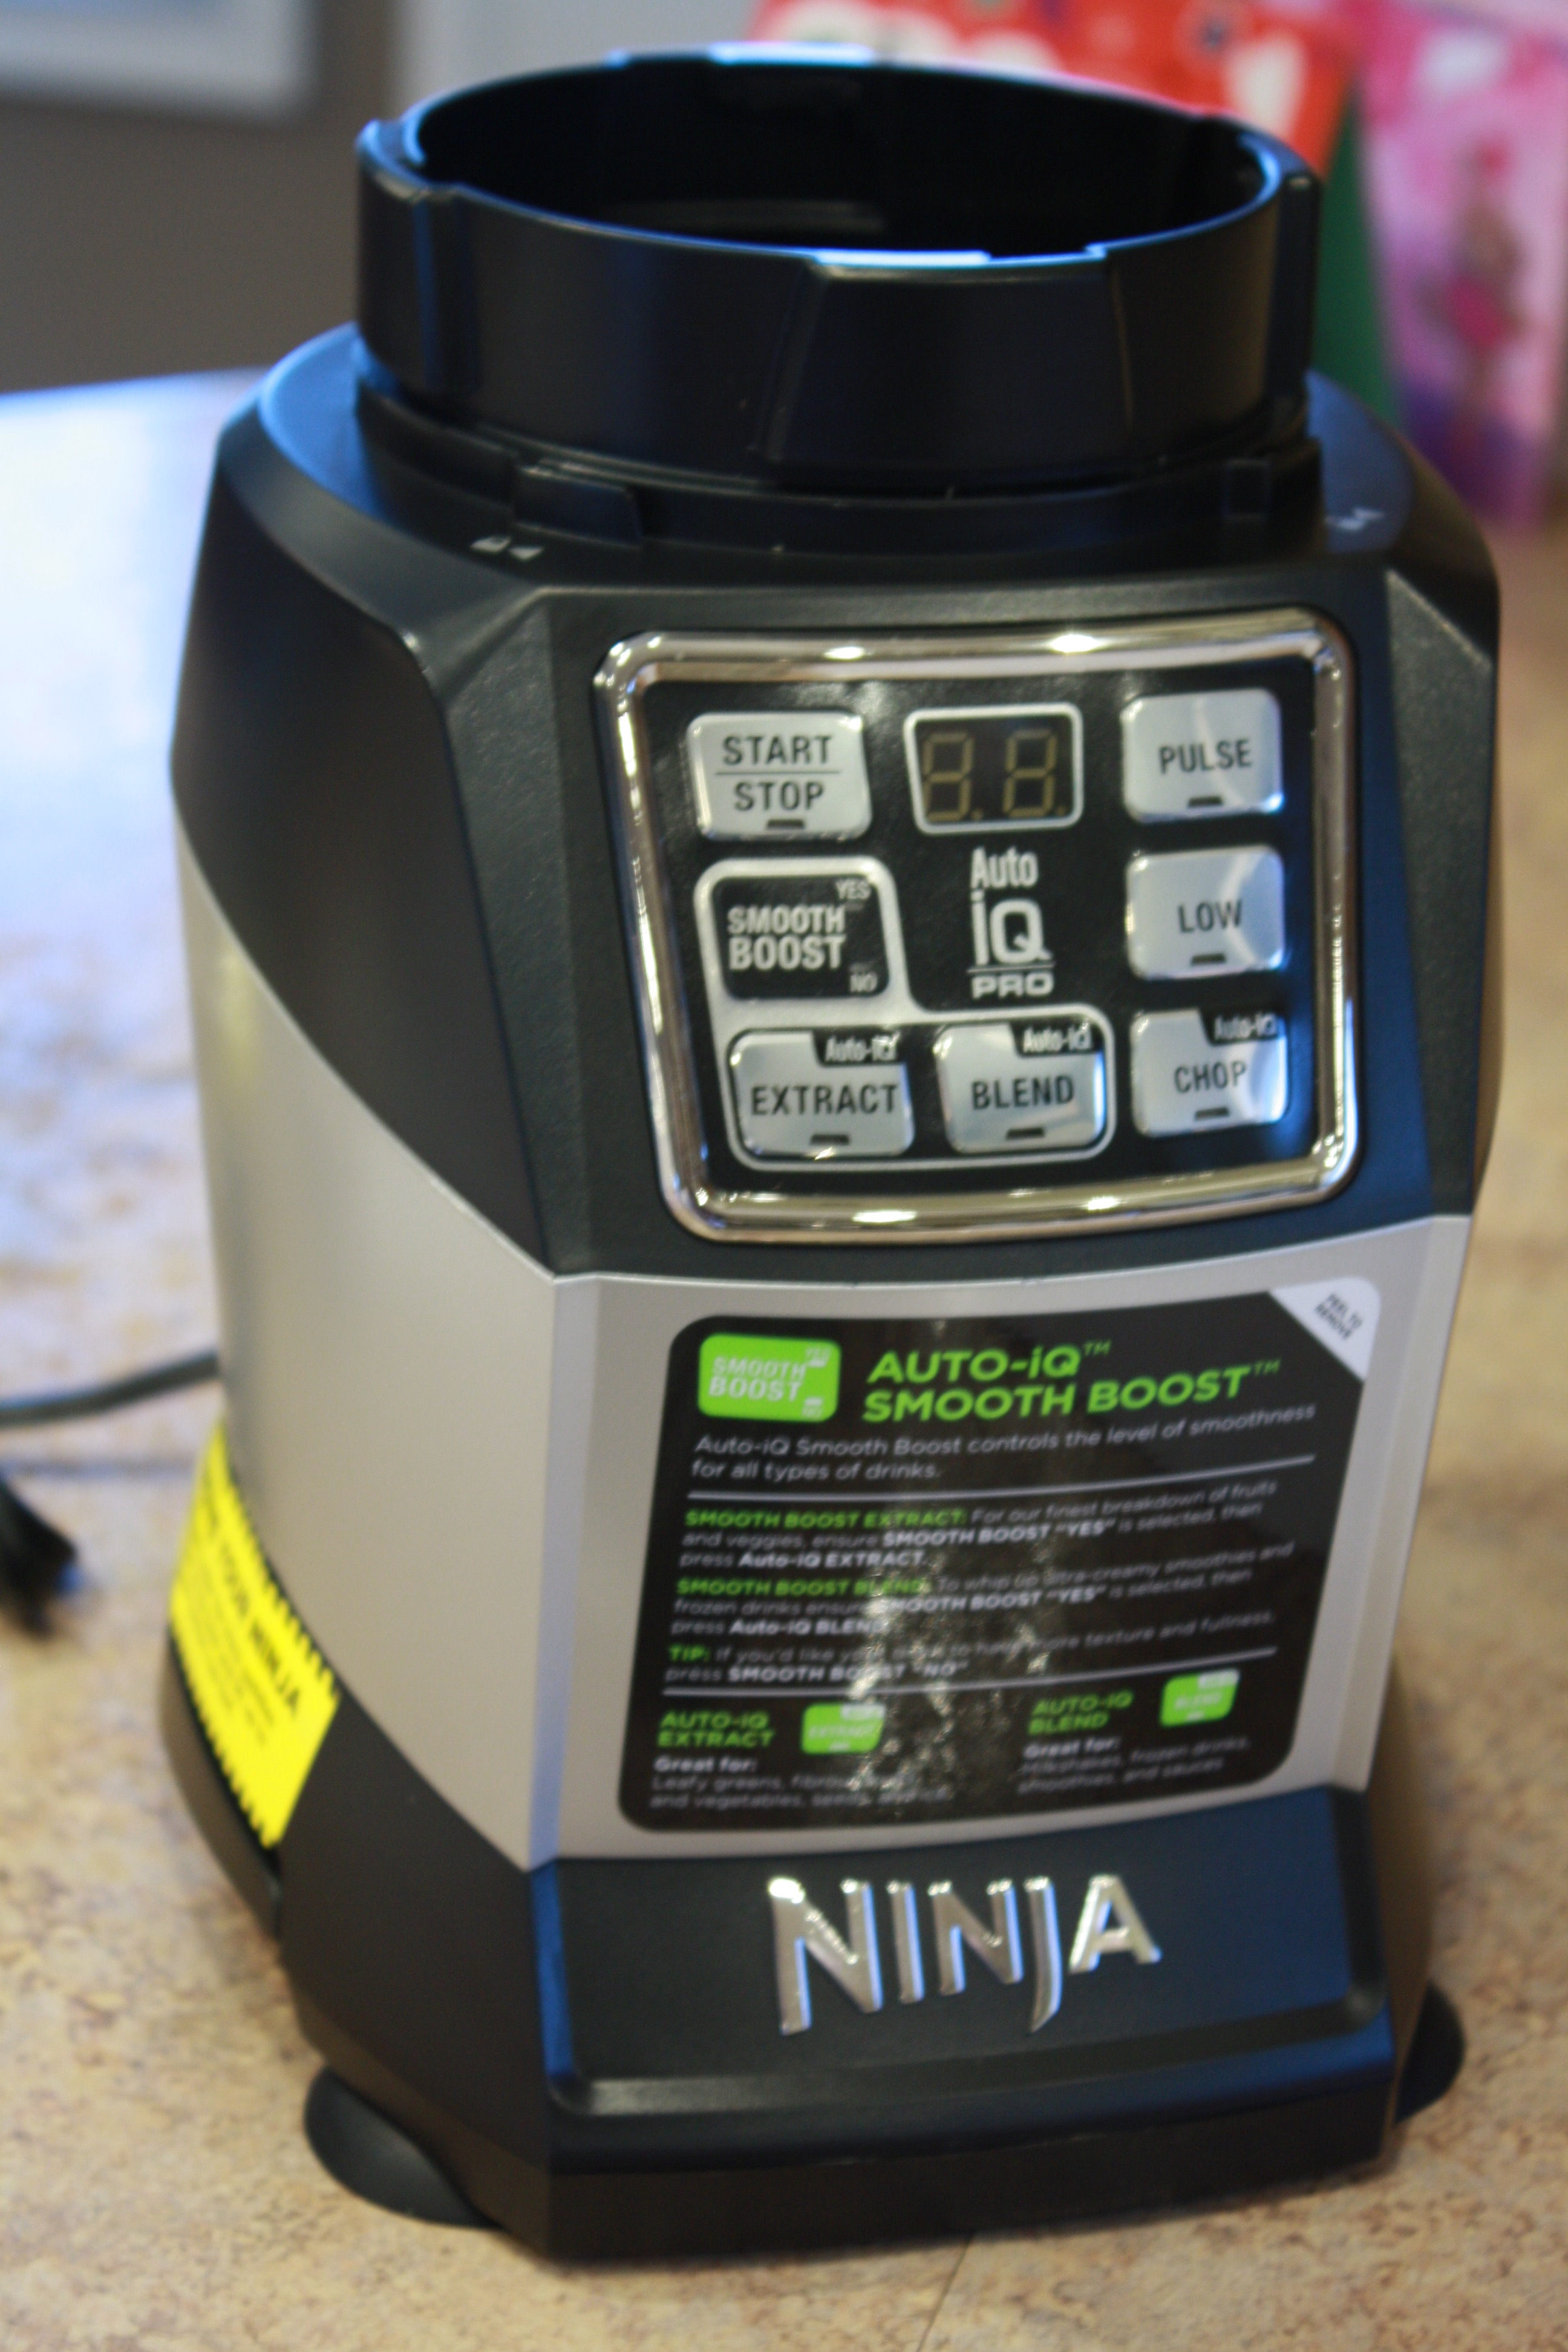 Auto-IQ Compact System Ninja Blender Review & Recipes